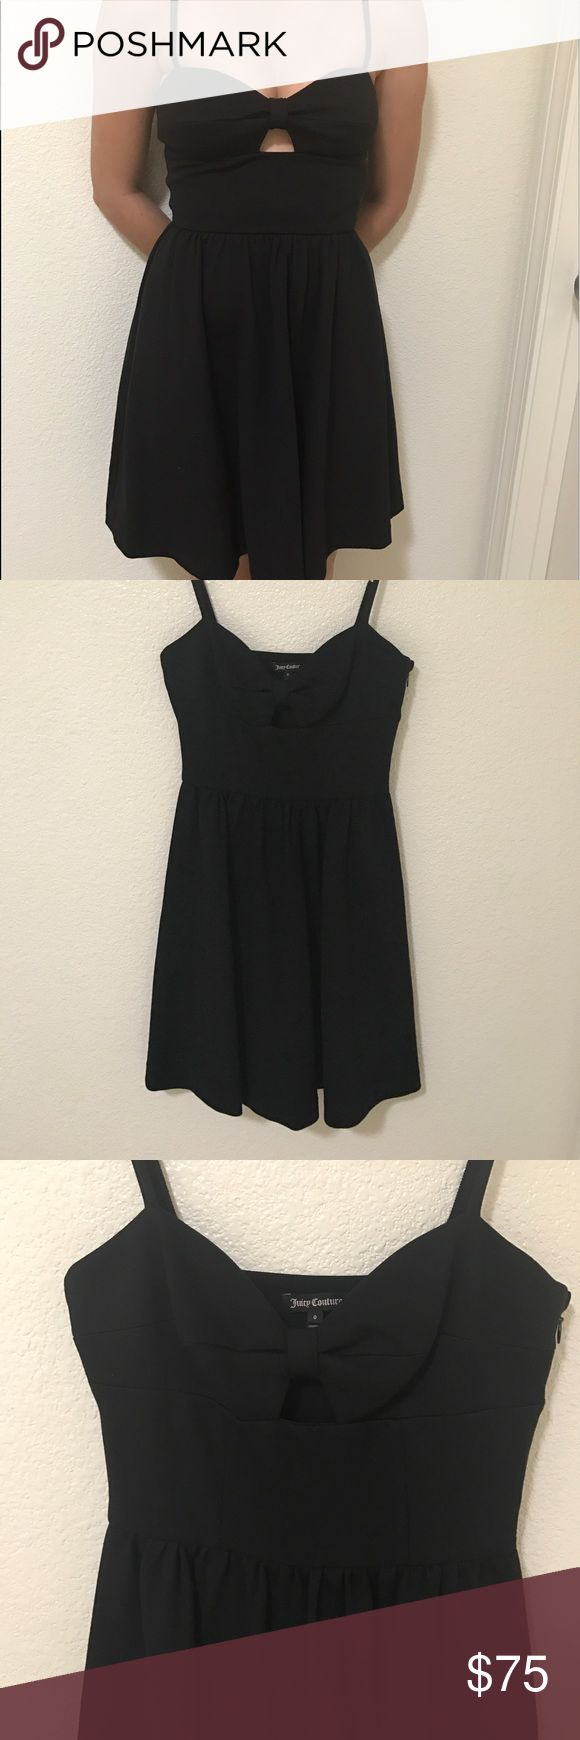 🔥FINAL Juicy couture  bow front flare dress Juicy couture black bow front flare dress wore in great condition size 0.⛔️price firm⛔️NO TRADES NO LOWBALLING Juicy Couture Dresses Midi